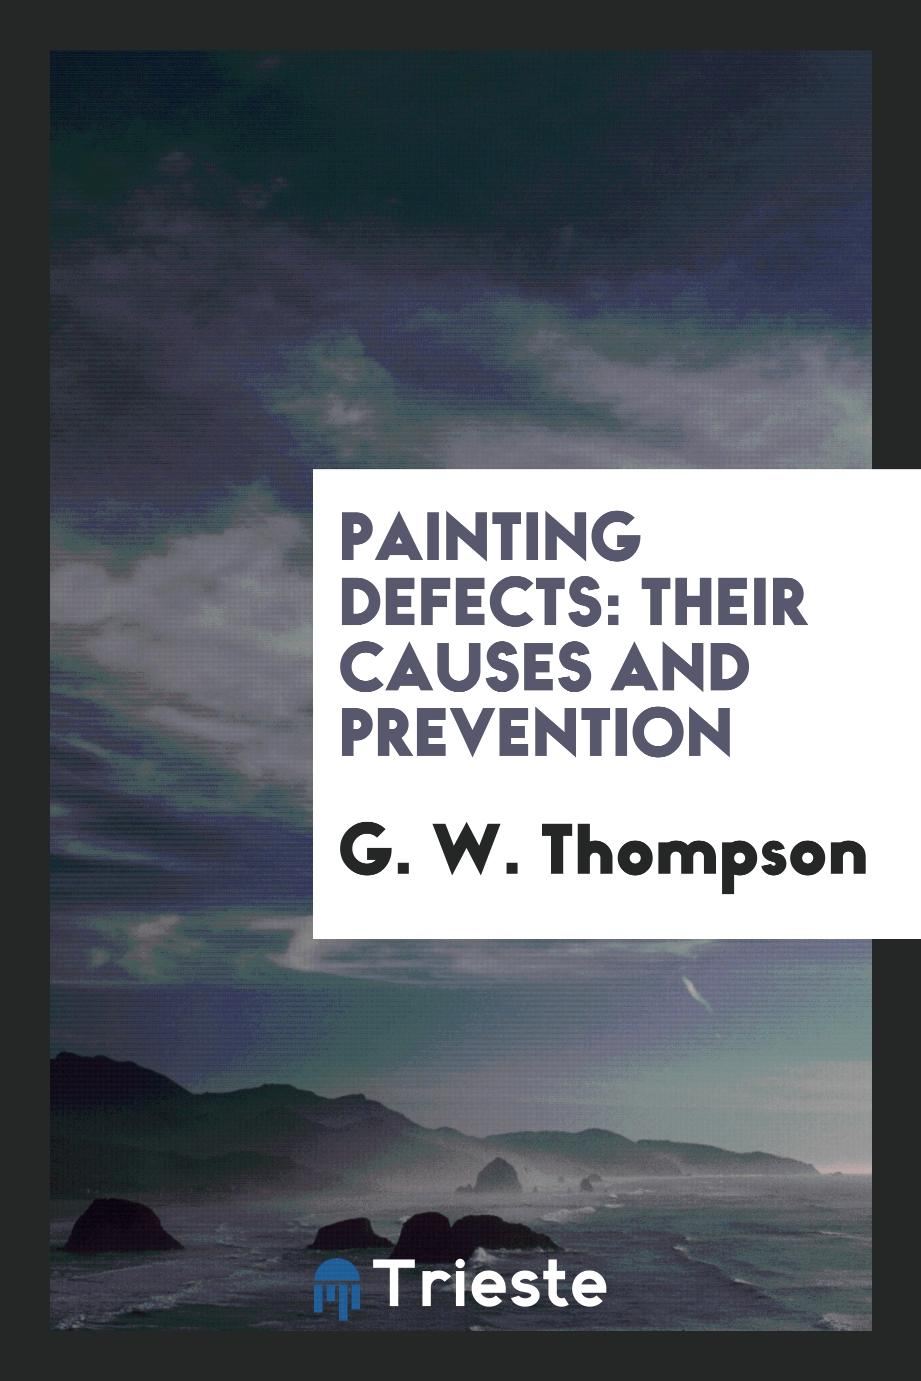 Painting Defects: Their Causes and Prevention